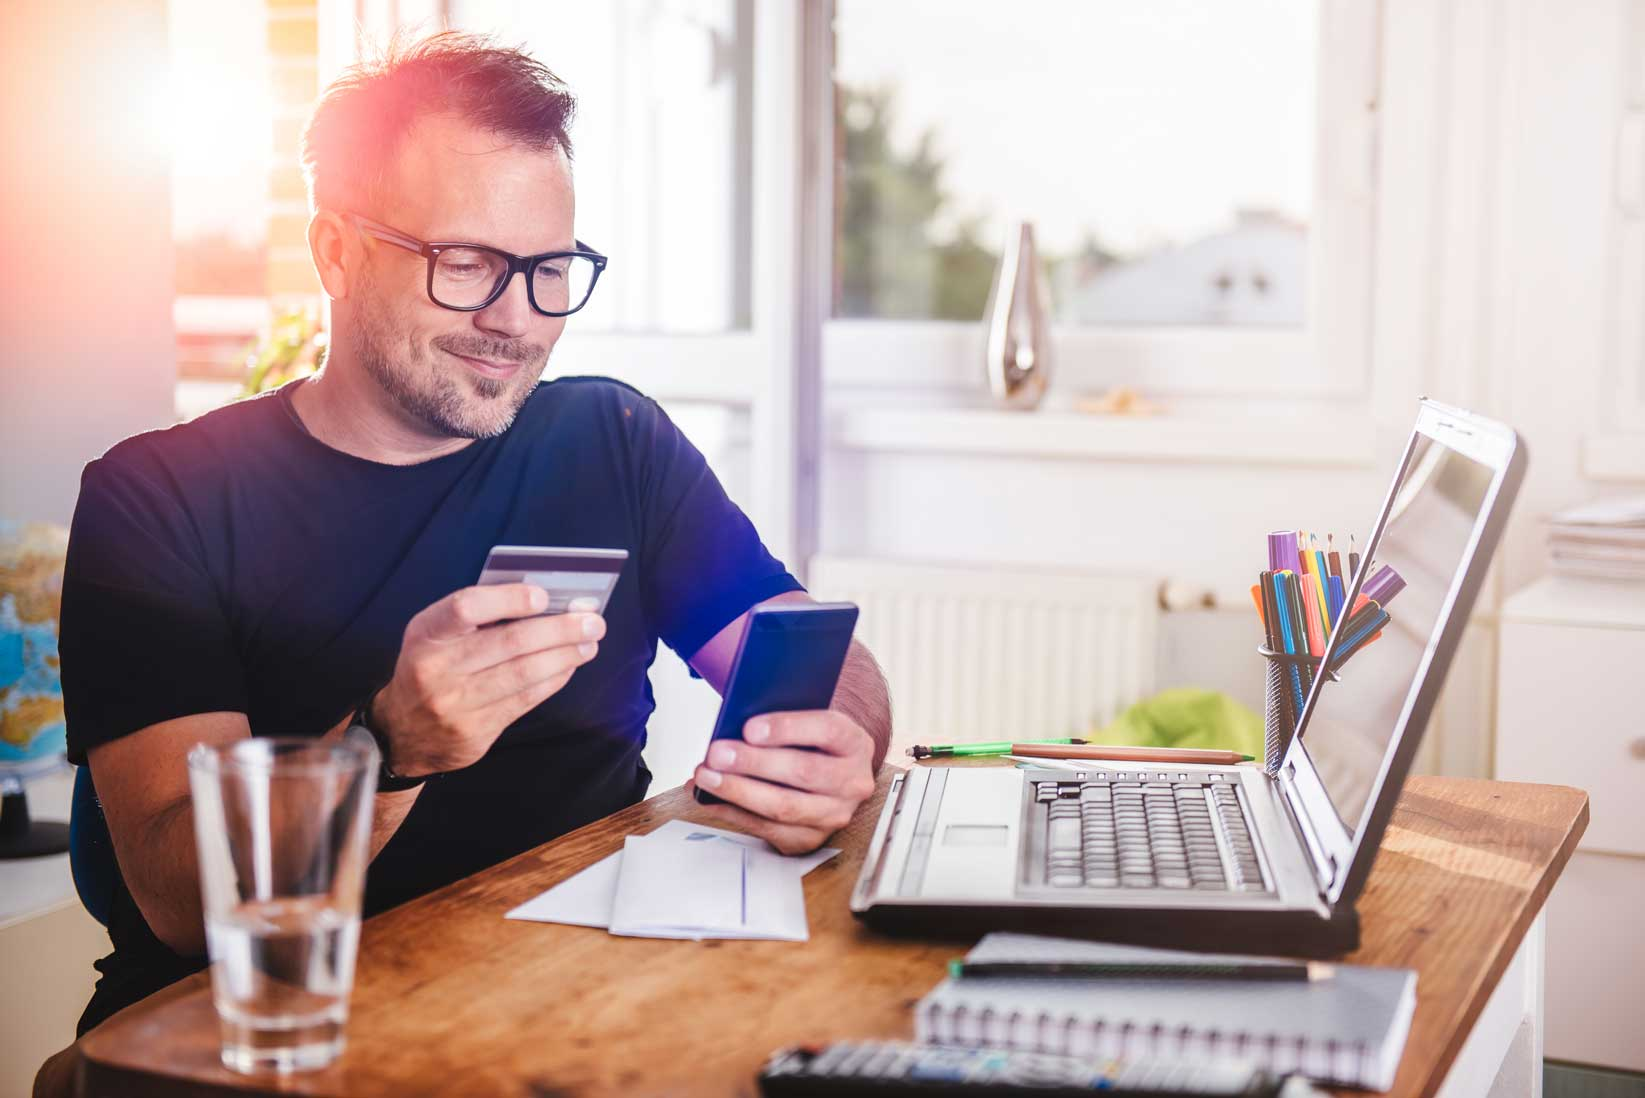 Whether co-branding your card or providing your own rewards, credit cards are an important growth tool for banks and credit unions to acquire new customers and offer existing ones continued value.